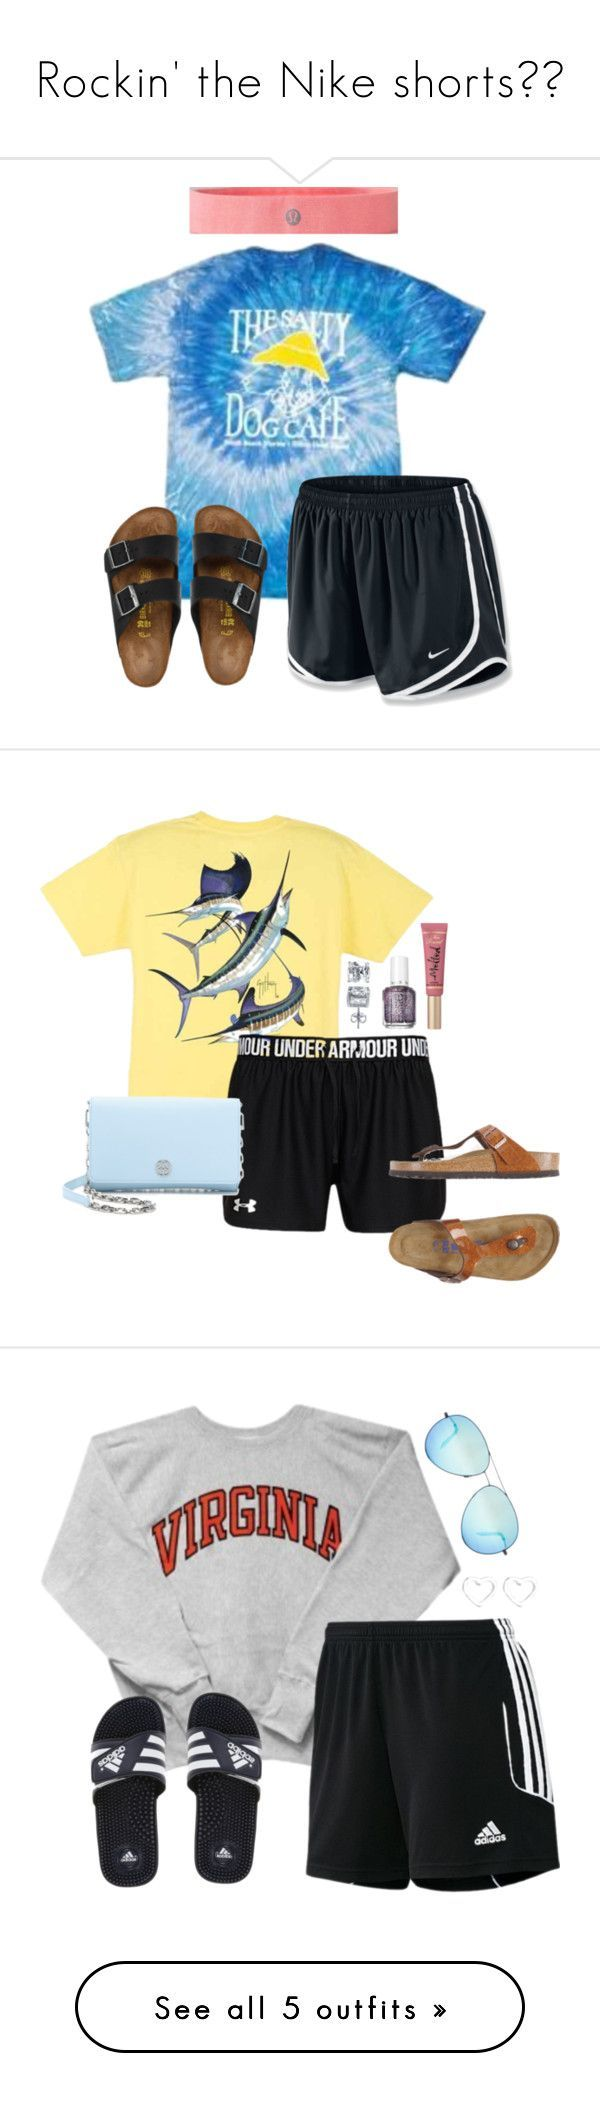 """Rockin' the Nike shorts"" by highheel-hannah ❤ liked on Polyvore featuring NIKE, lululemon, Birkenstock, Guy Harvey, Under Armour, Tory Burch, BERRICLE, Too Faced Cosmetics, Essie and adidas"